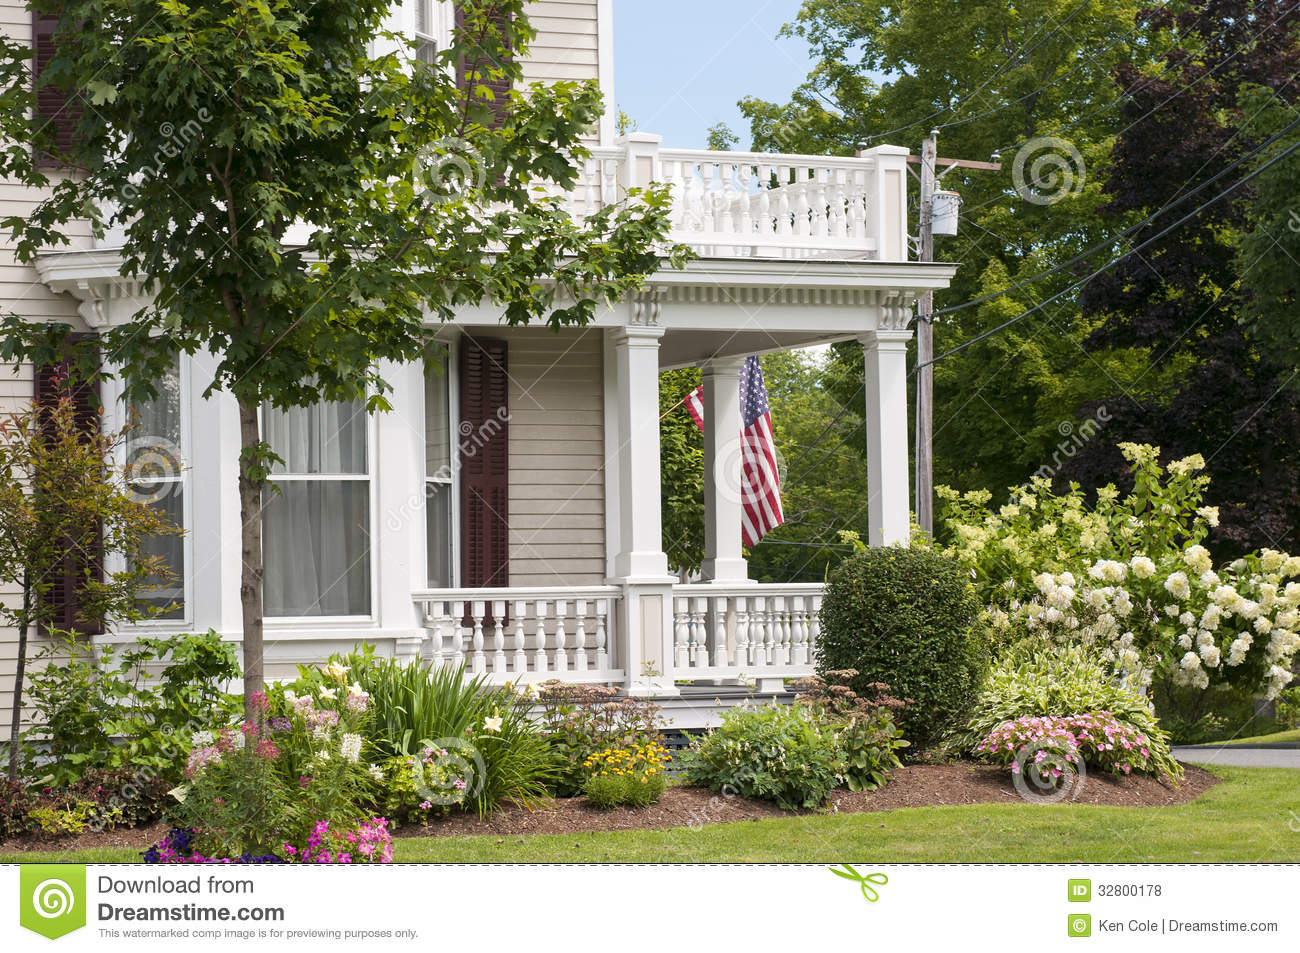 New England house porch stock photo. Image of country ... - photo#40